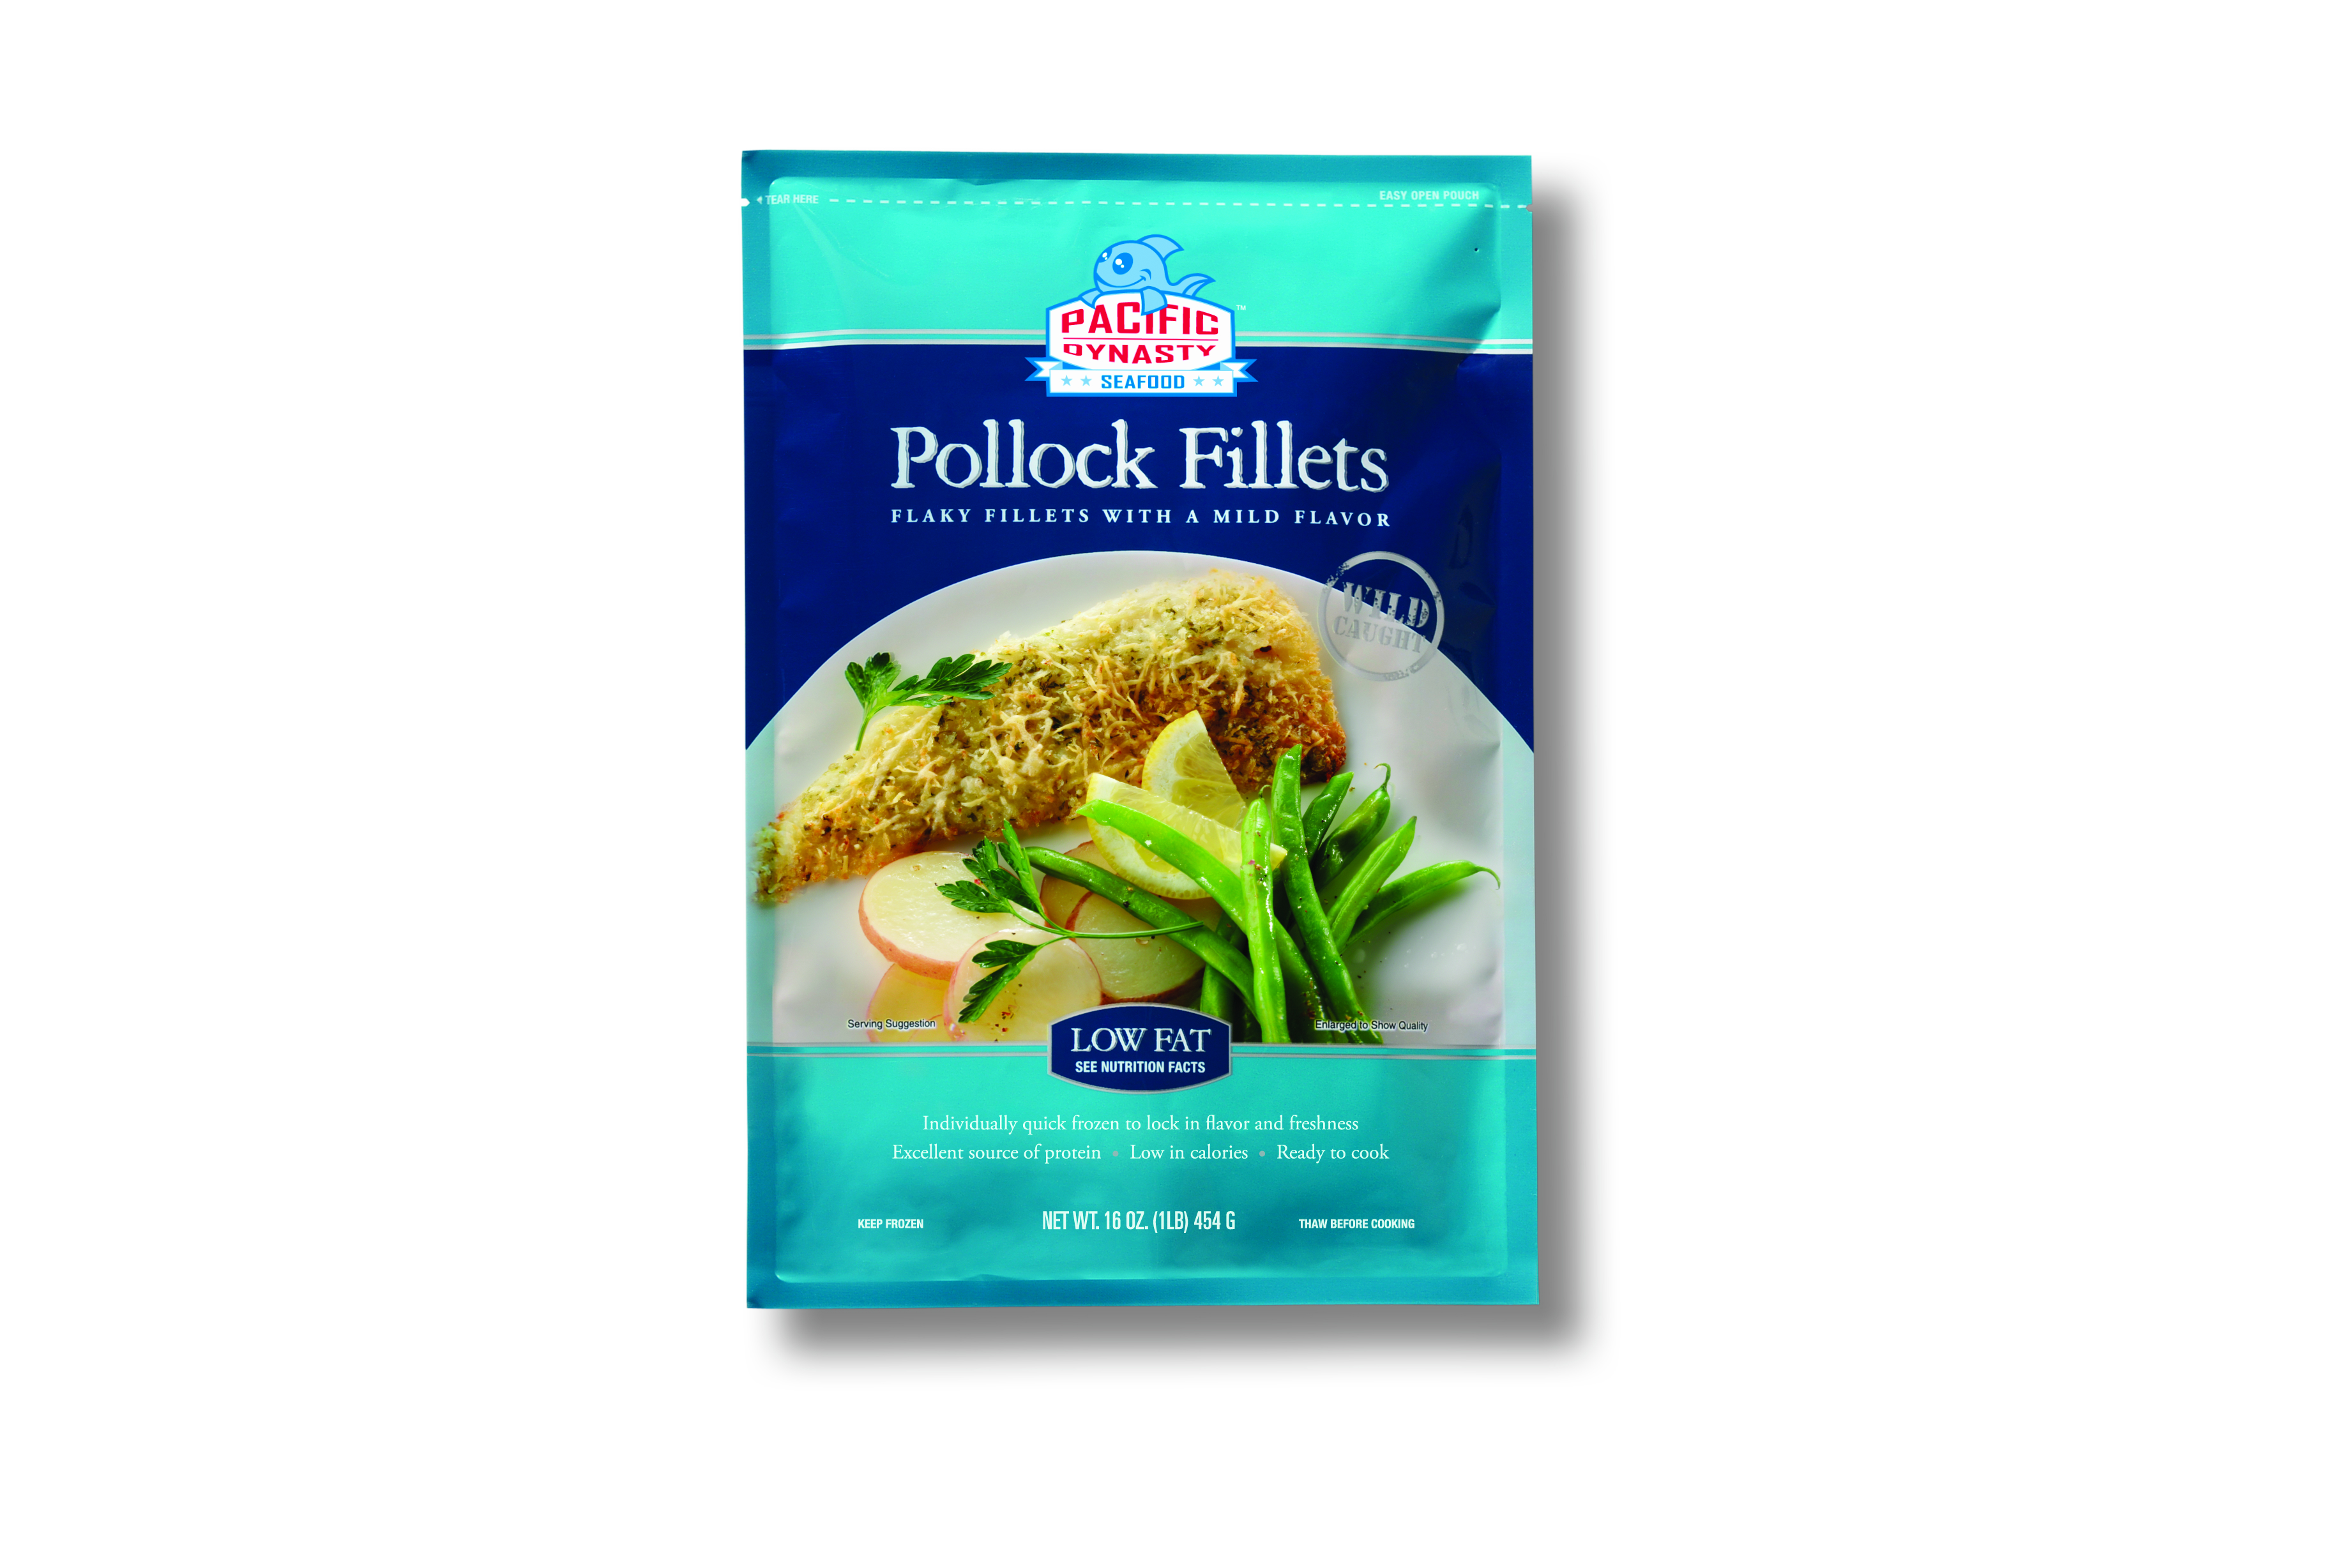 Fish products pacific dynasty seafood for Fishpond products